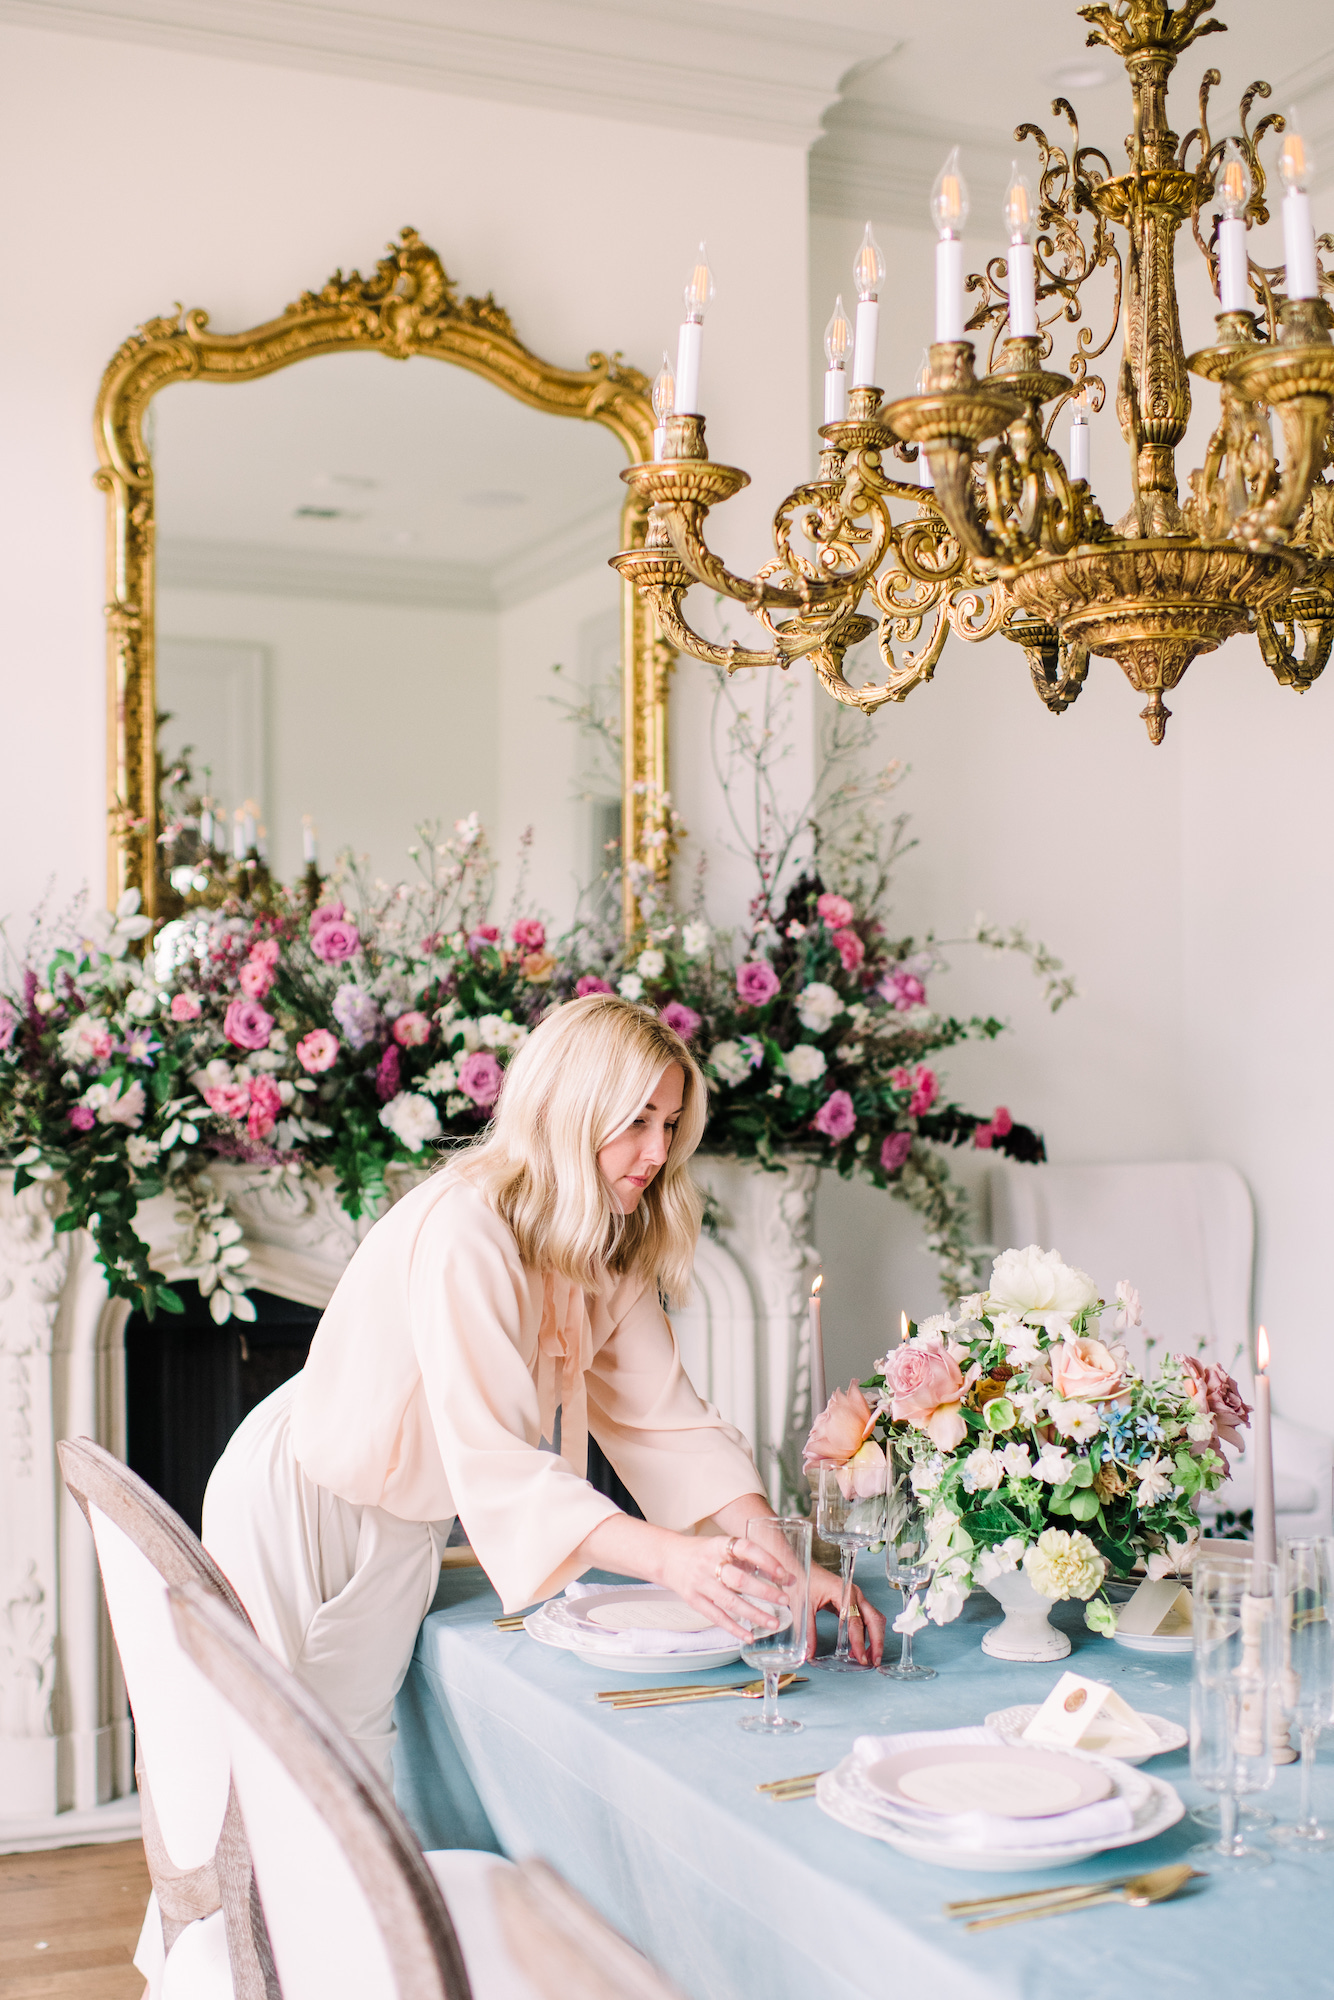 Stylist  JADE MAGNOLIA  designing the perfect wedding tablescape for her workshop attendees. Photo by  KAITI MOYERS PHOTOGRAPHY .